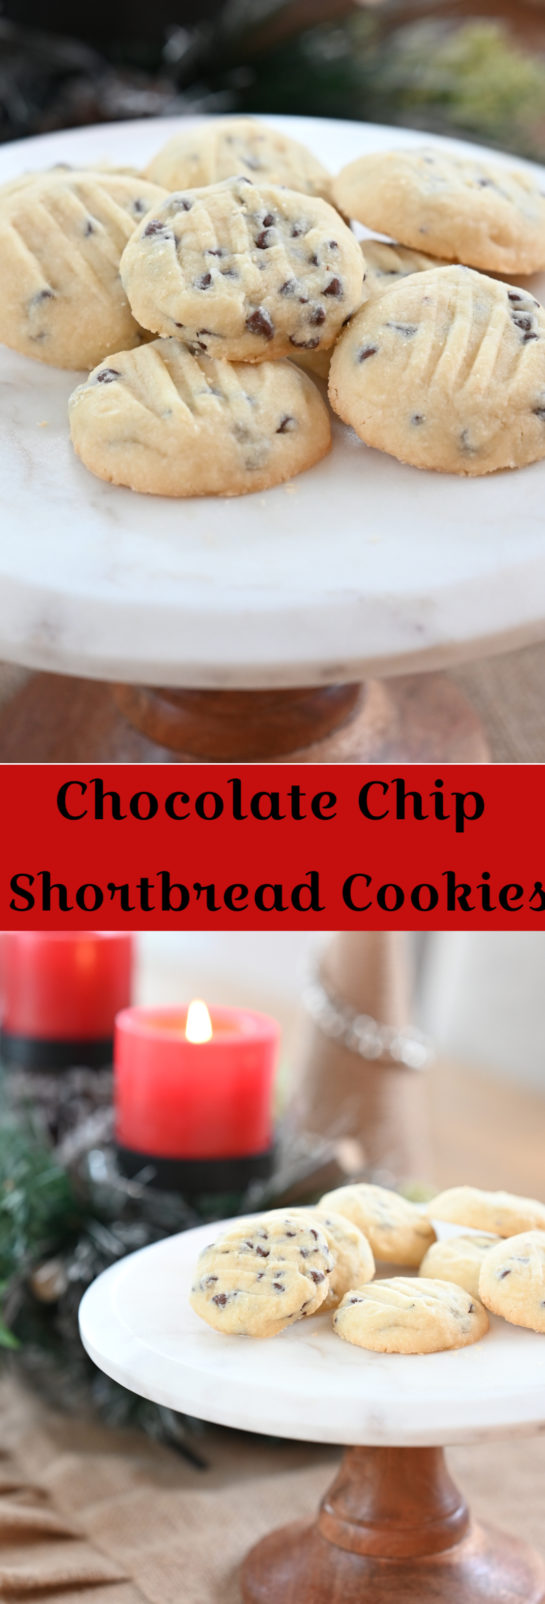 BEST Chocolate Chip Shortbread Cookies recipe are my favorite Christmas cookie recipe! These cookies areso tender, buttery and delicate! The chocolate chips are the perfect addition.